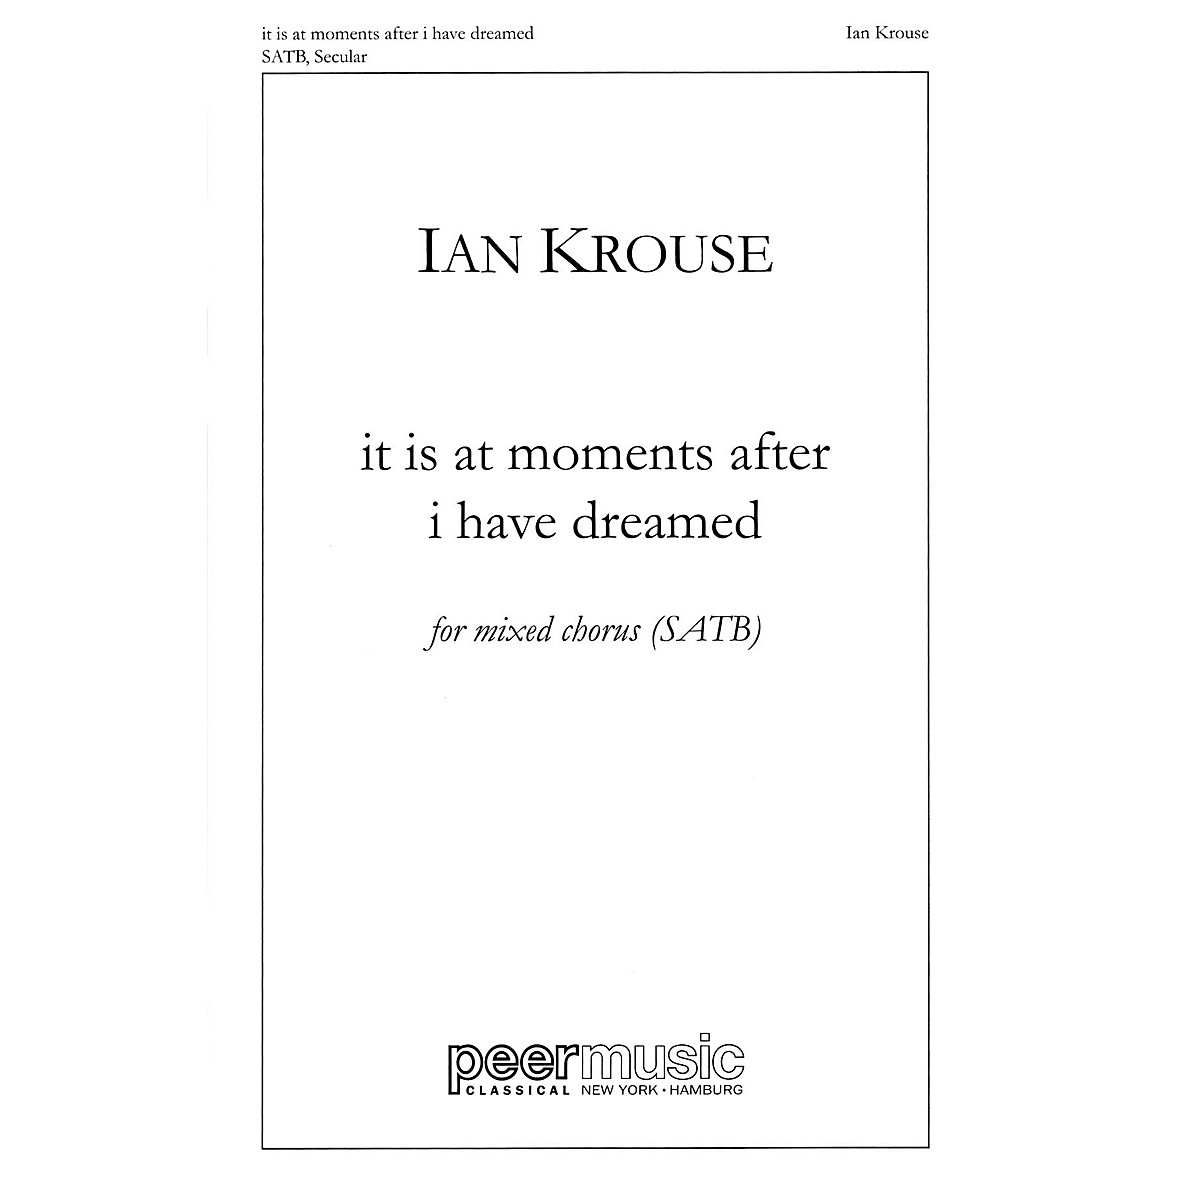 Peer Music it is at moments after i have dreamed SATB a cappella Composed by Ian Krouse